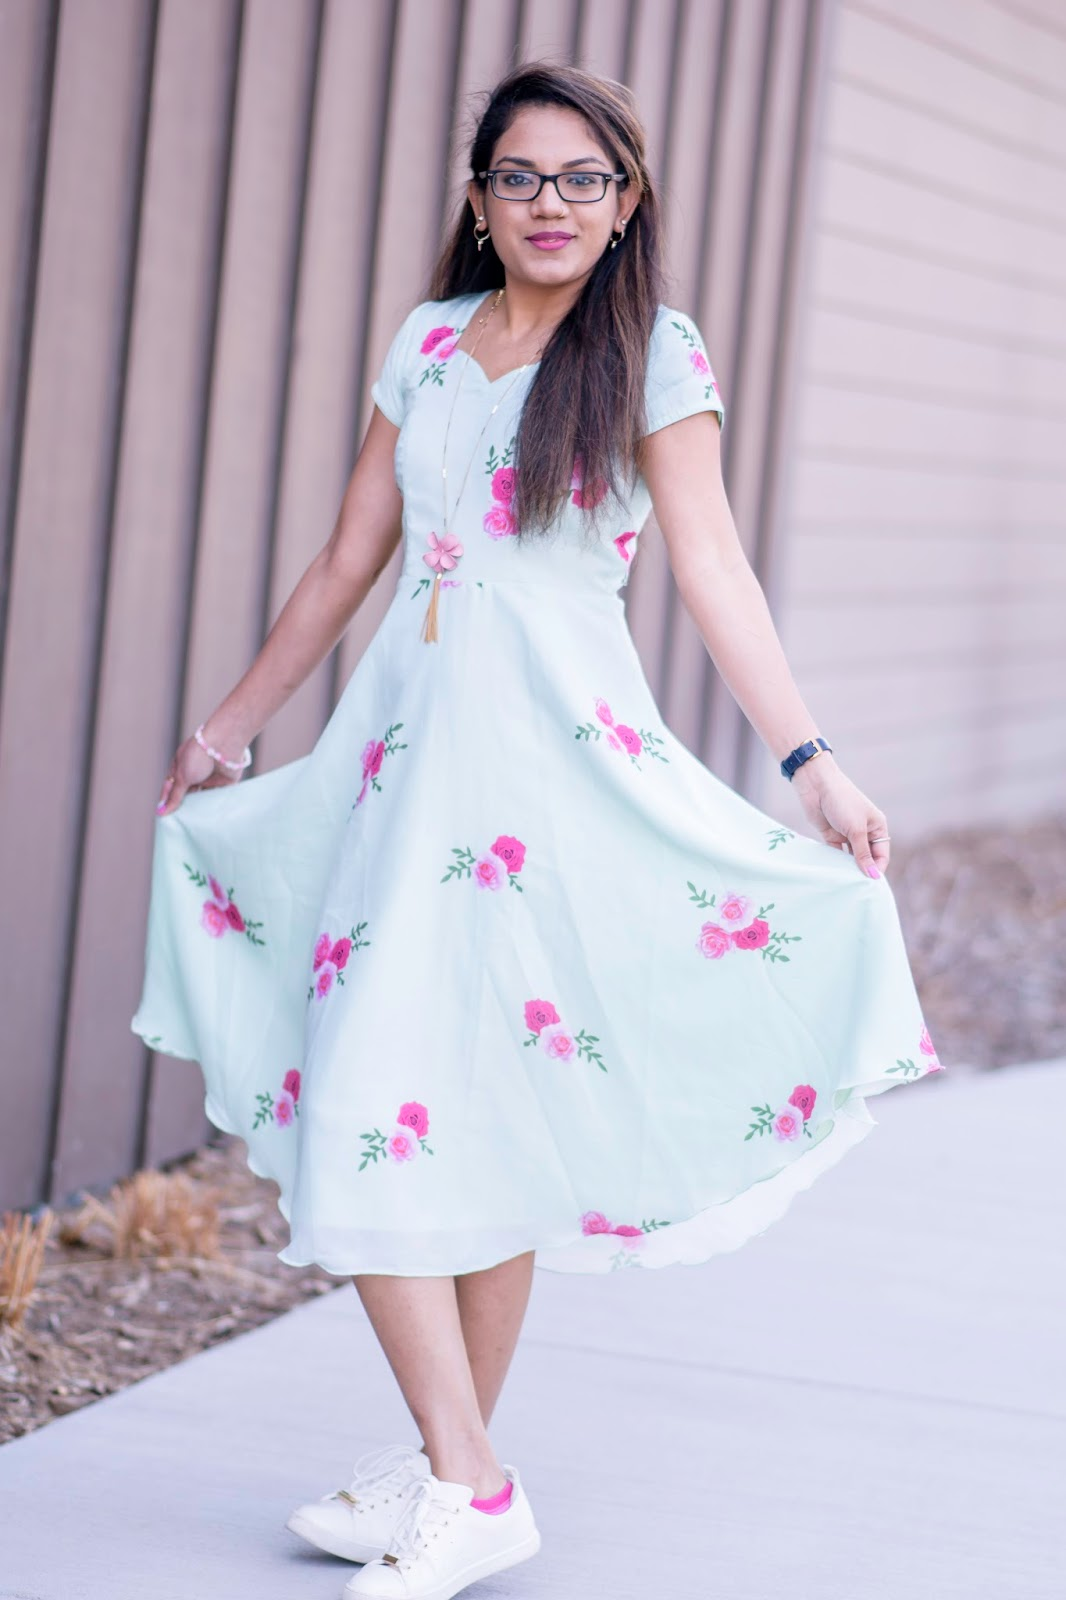 pastelline-florals-for-summer